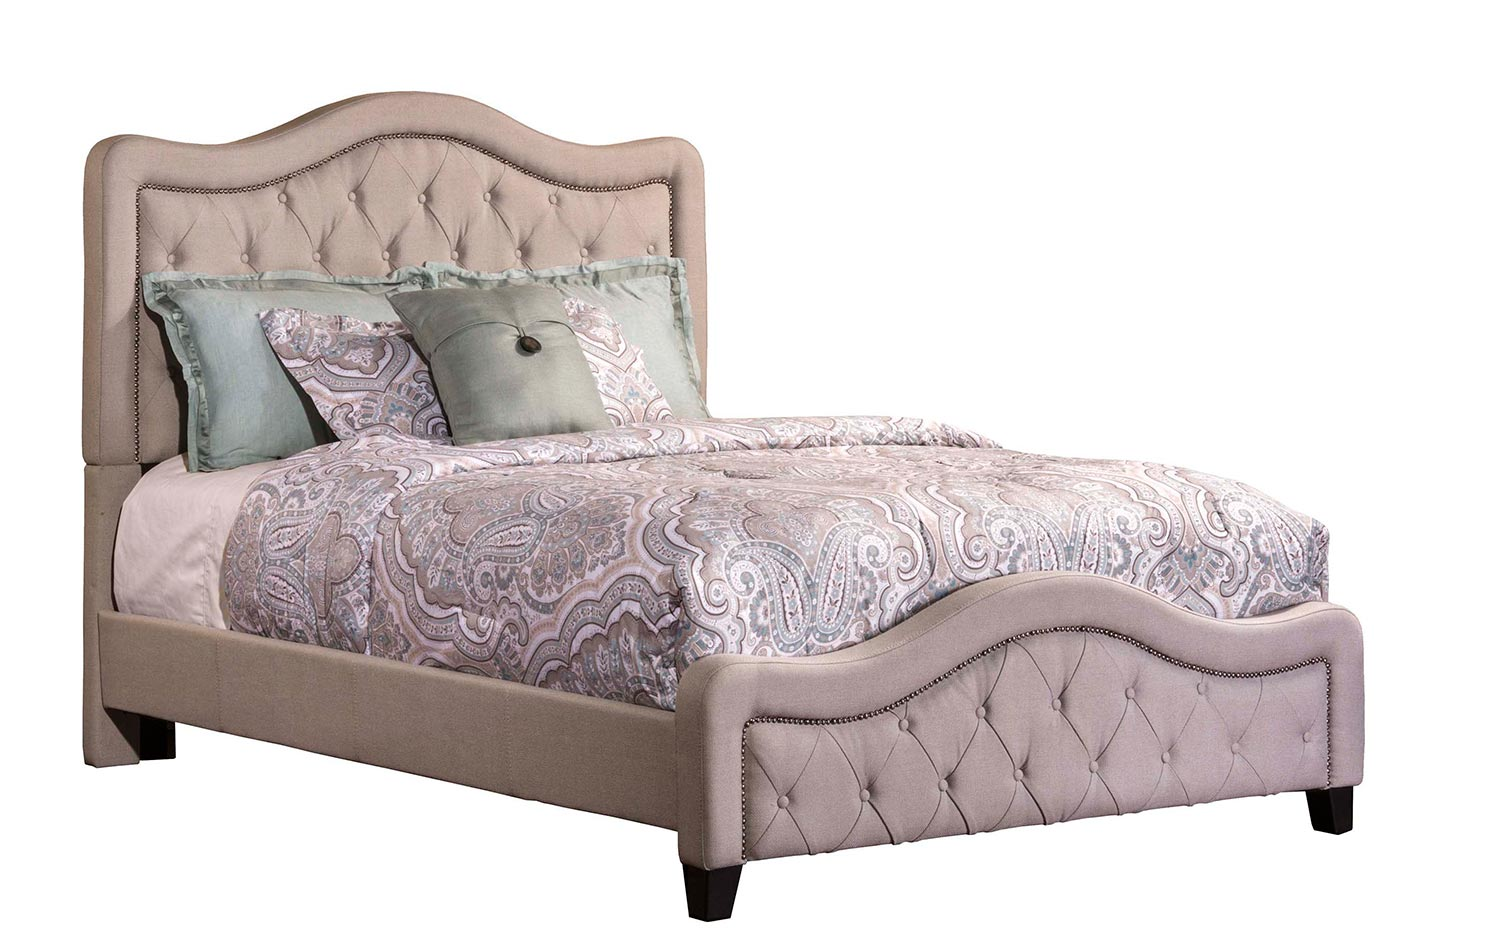 tufted upholstered bed. Hillsdale Trieste Tufted Upholstered Bed - Dove Gray